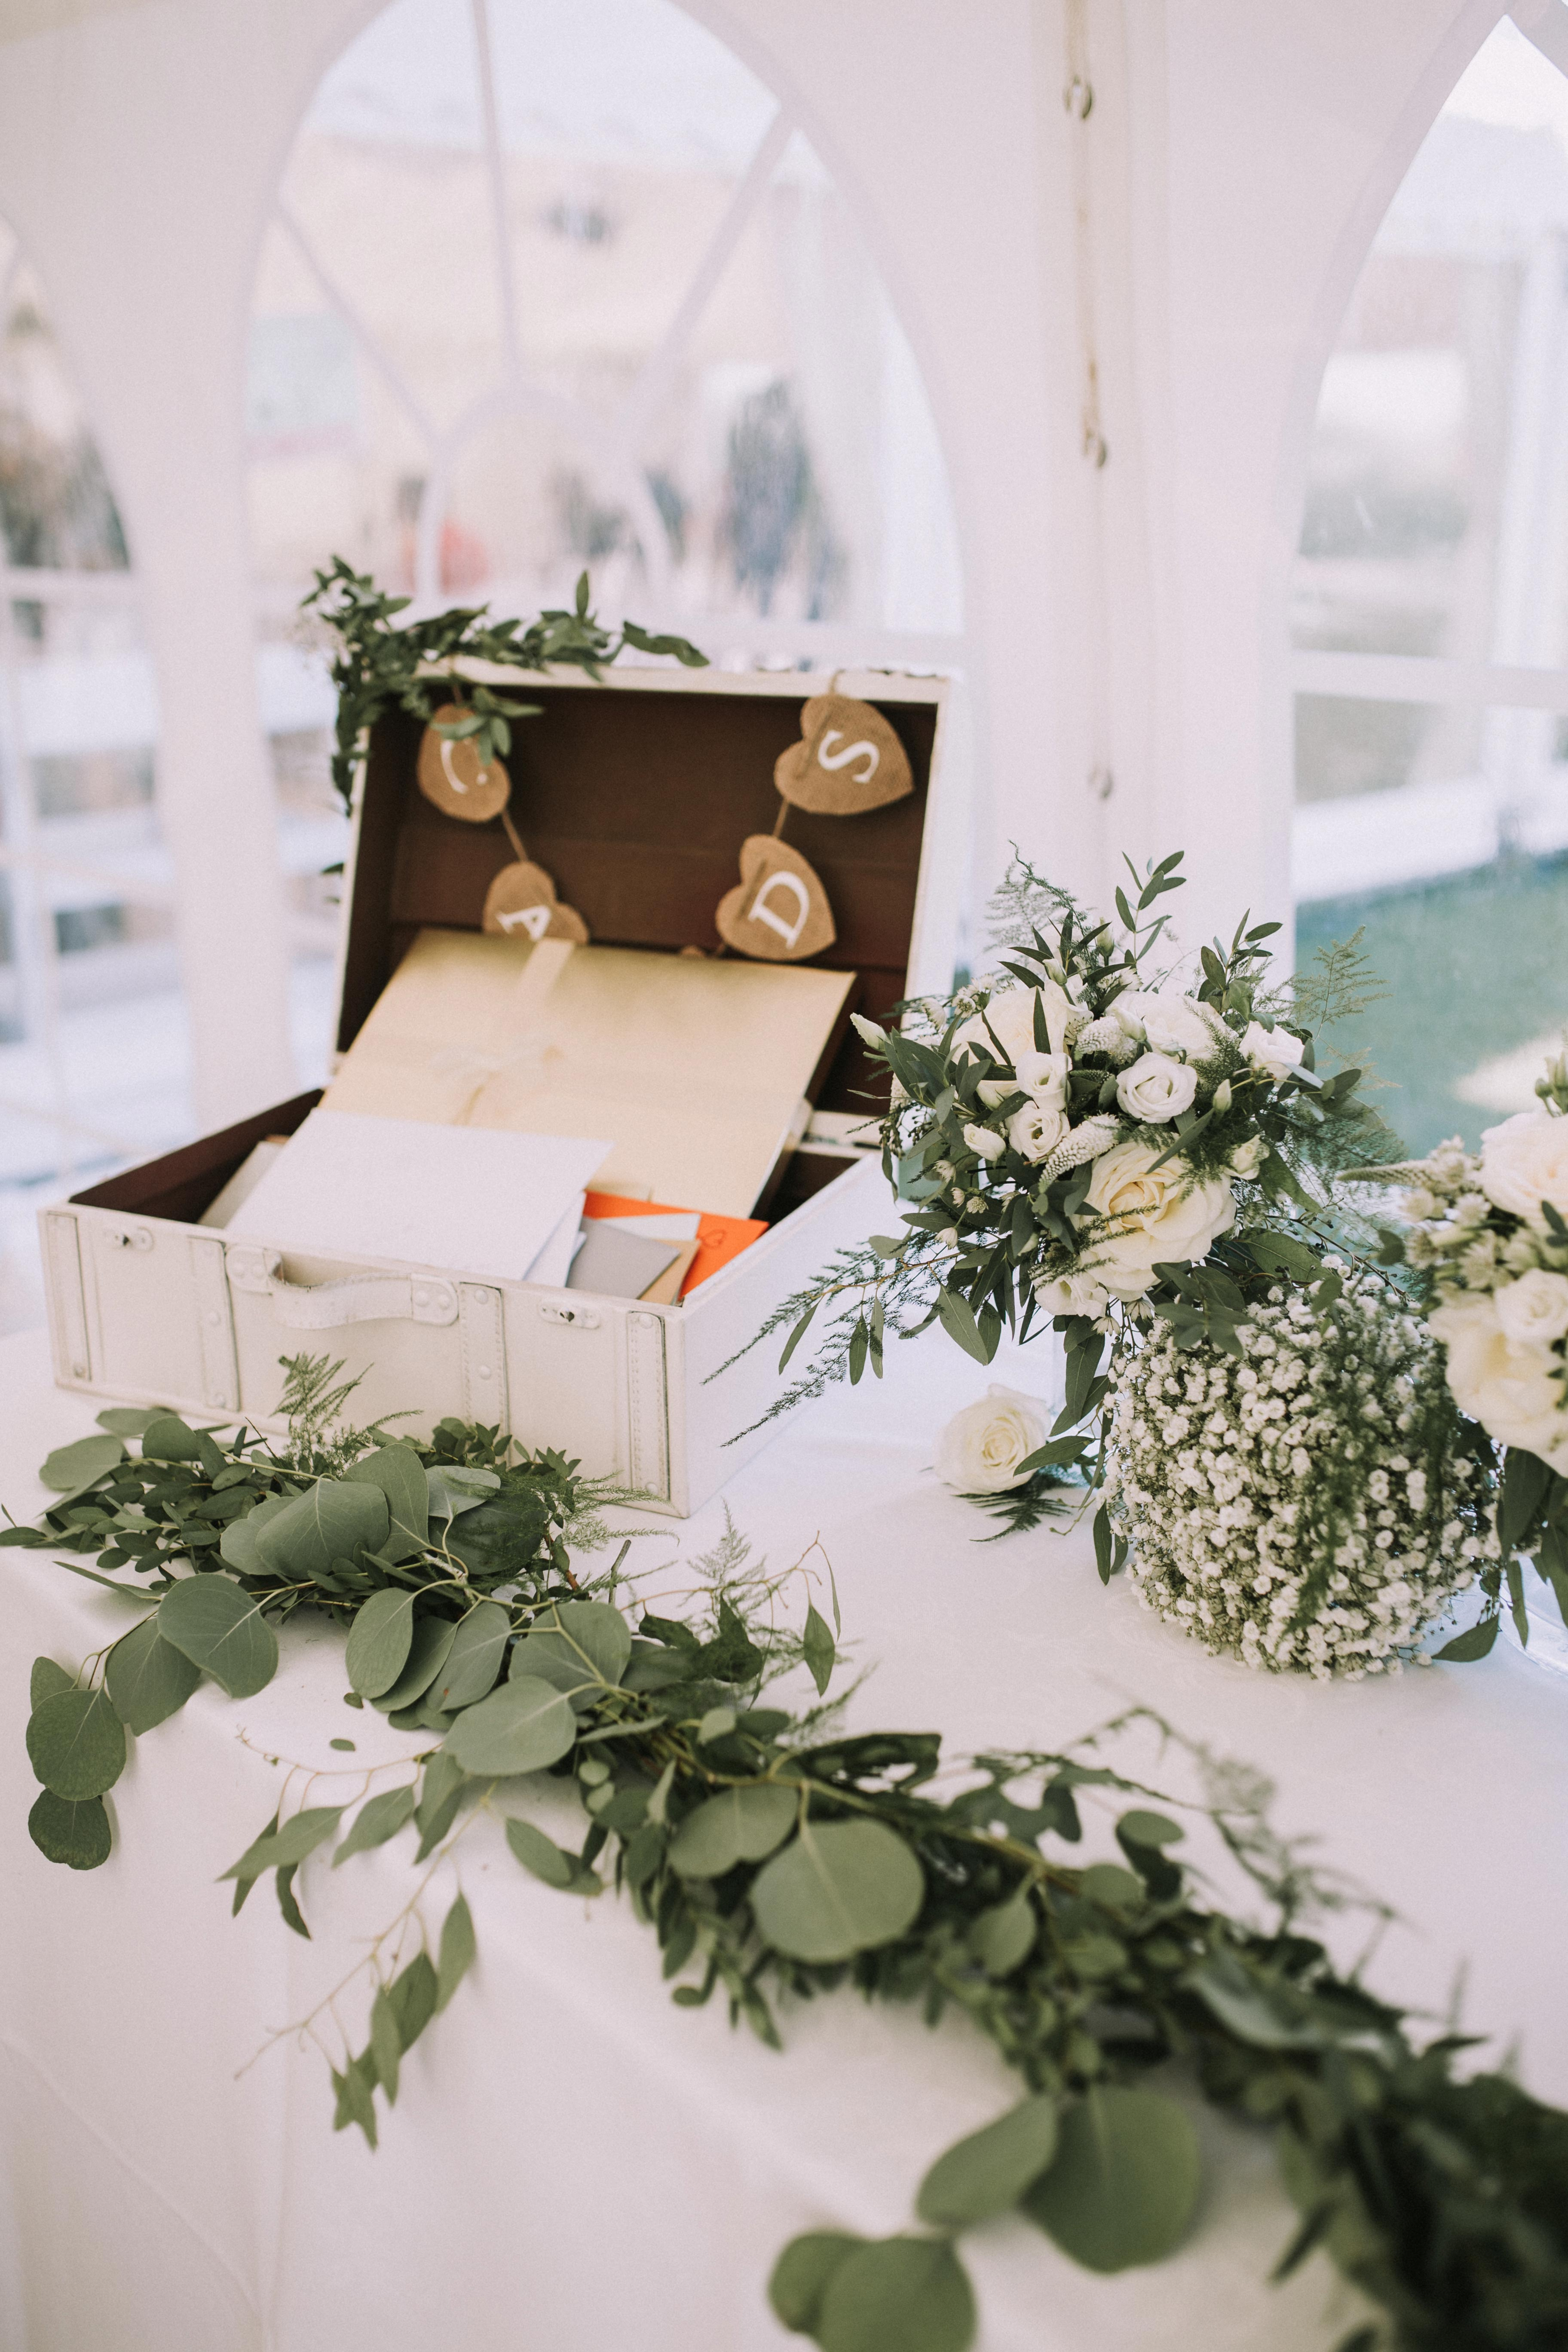 wedding gift tables nataly j photography